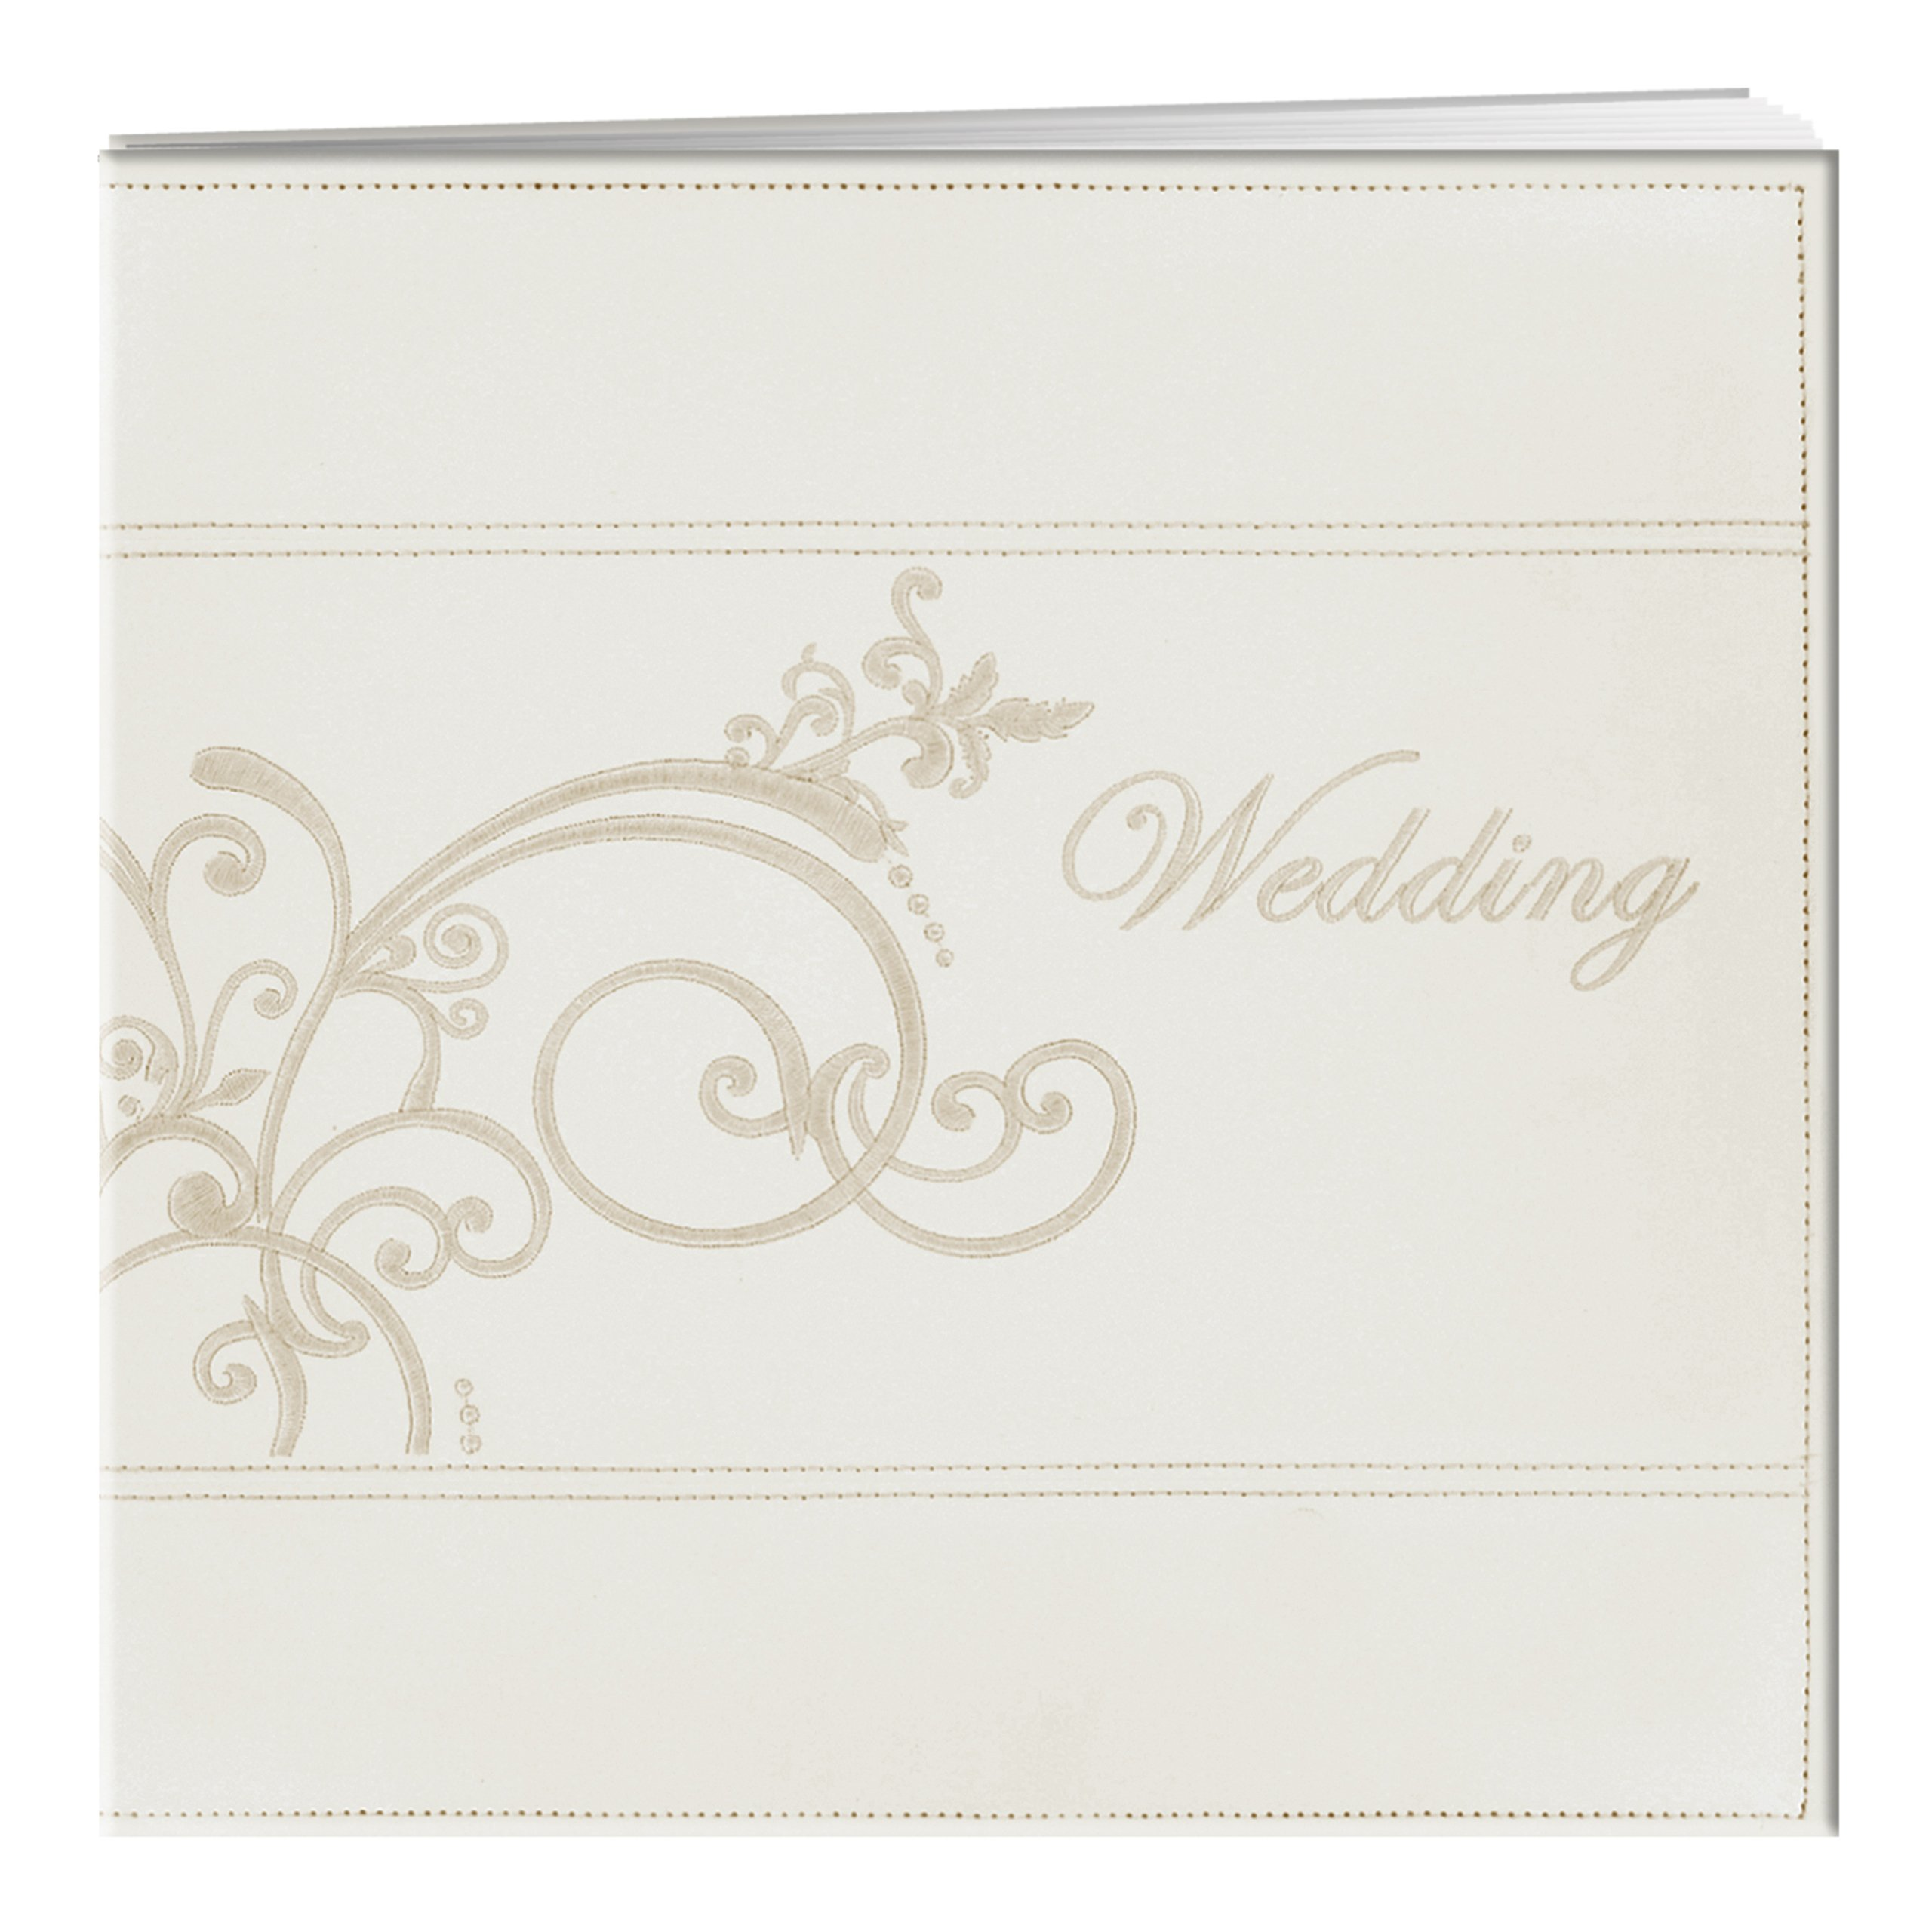 Pioneer 12-Inch by 12-Inch Postbound Embroidered Scroll and Wedding Sewn Leatherette Cover Memory Book, Ivory by Pioneer Photo Albums